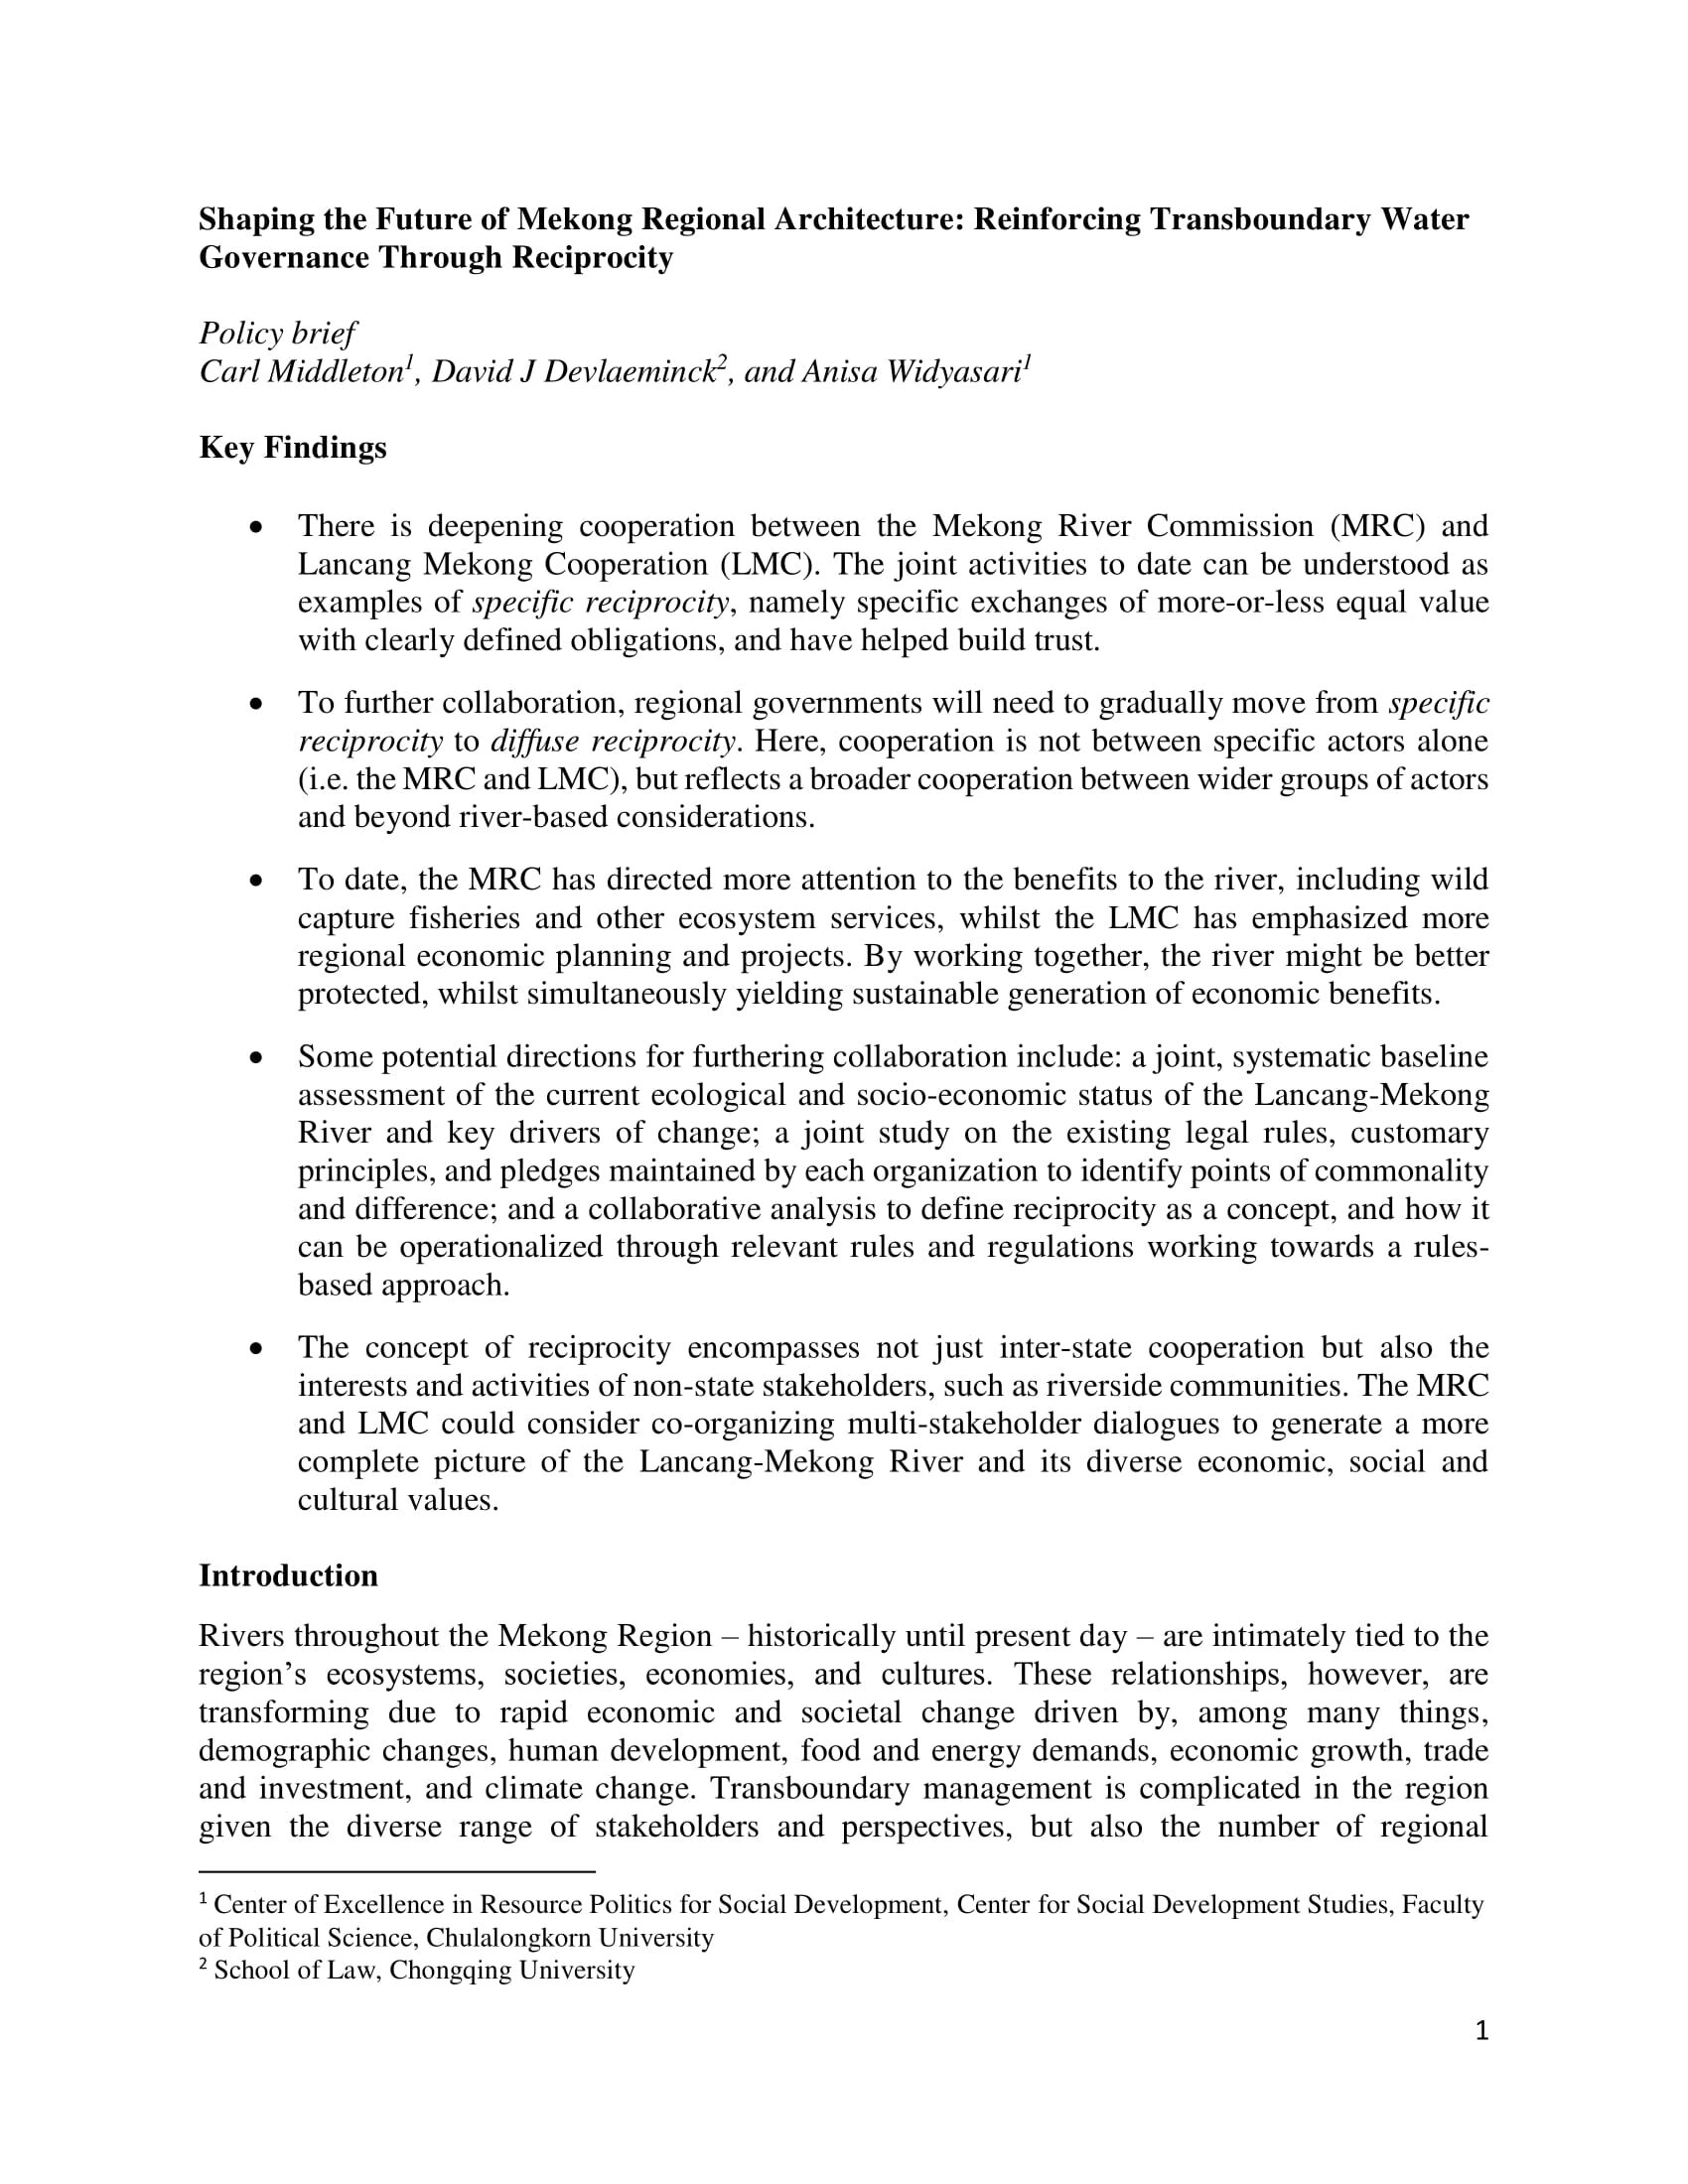 Transboundary-water-policy-brief_Final-25.6.19pg1-1.jpg